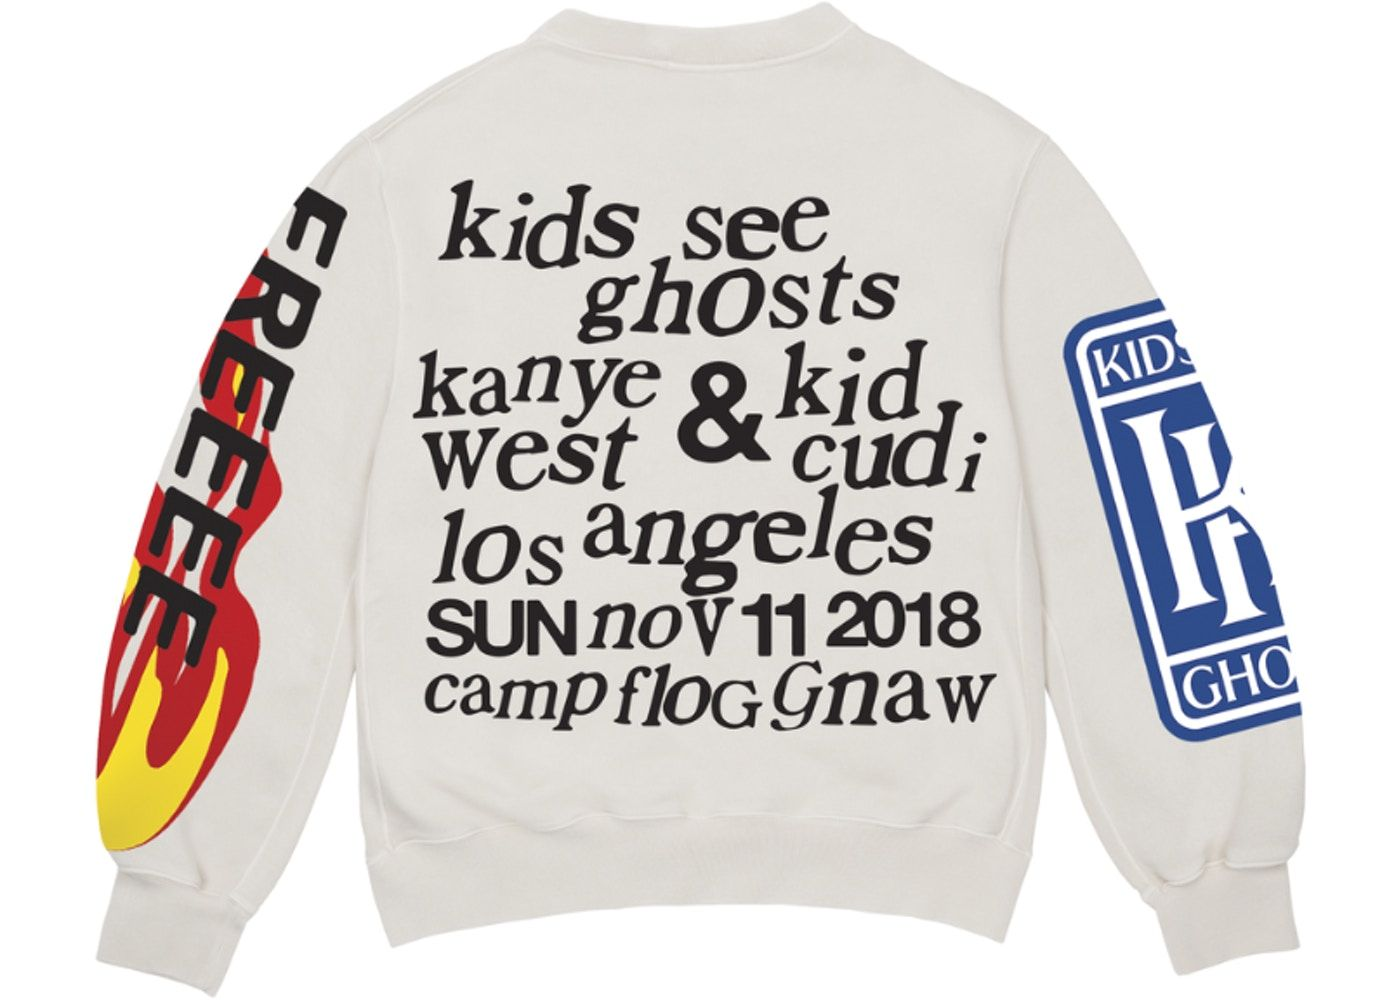 Kids See Ghosts Freeee Crewneck Sweatshirt Ghost In 2020 Sweatshirts Crew Neck Sweatshirt Alternative Fashion